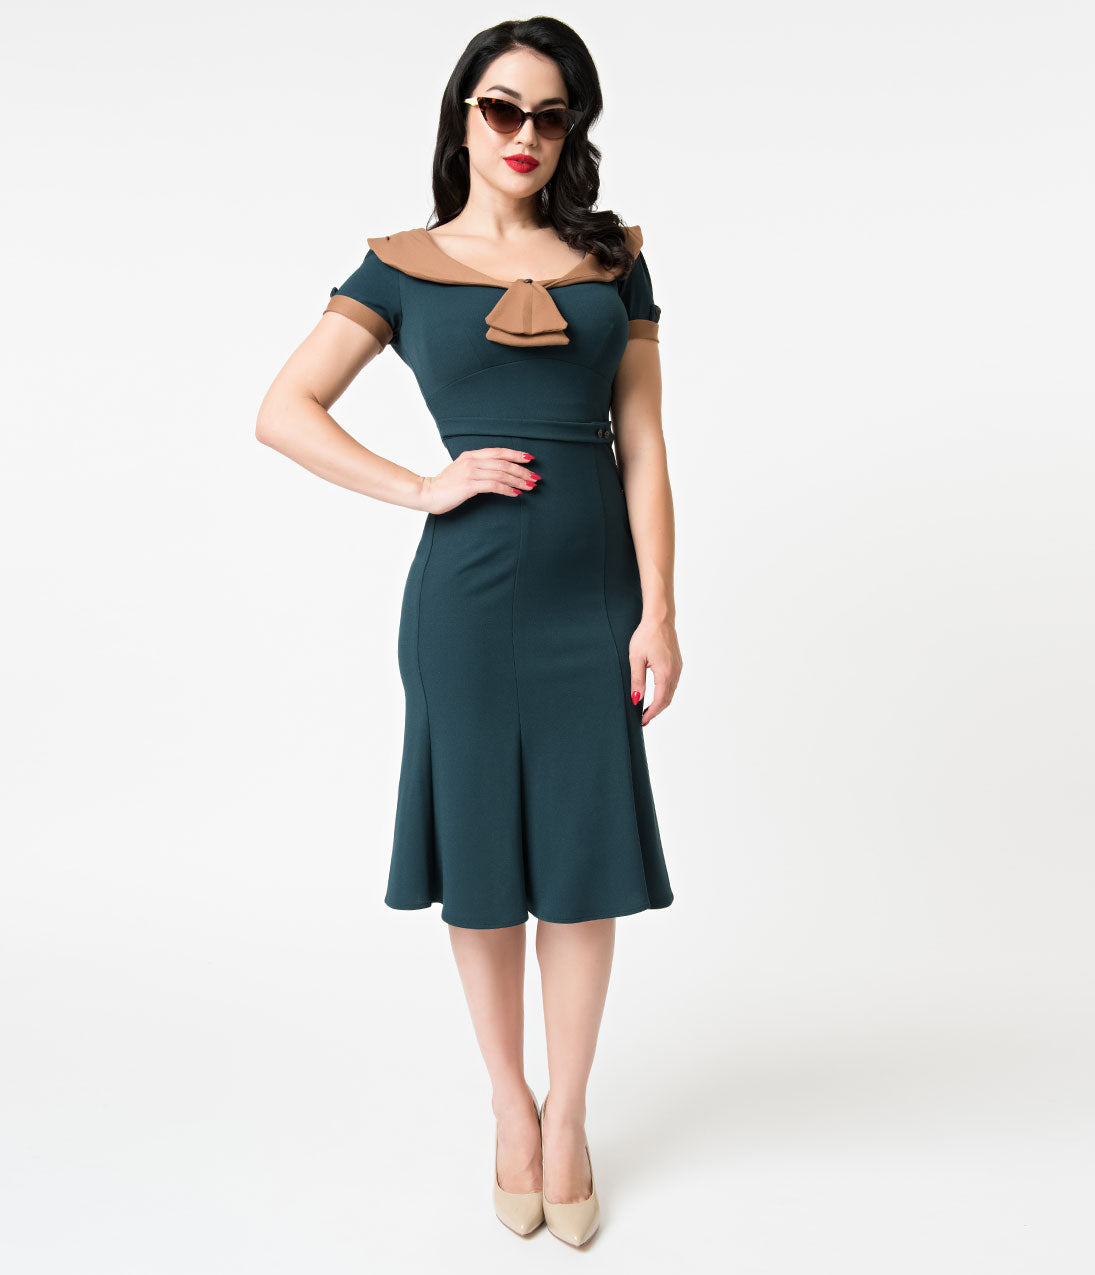 Vintage Christmas Dress | Party Dresses | Night Out Outfits Stop Staring 1940S Style Forest Green  Brown Army Girl Wiggle Dress $172.00 AT vintagedancer.com